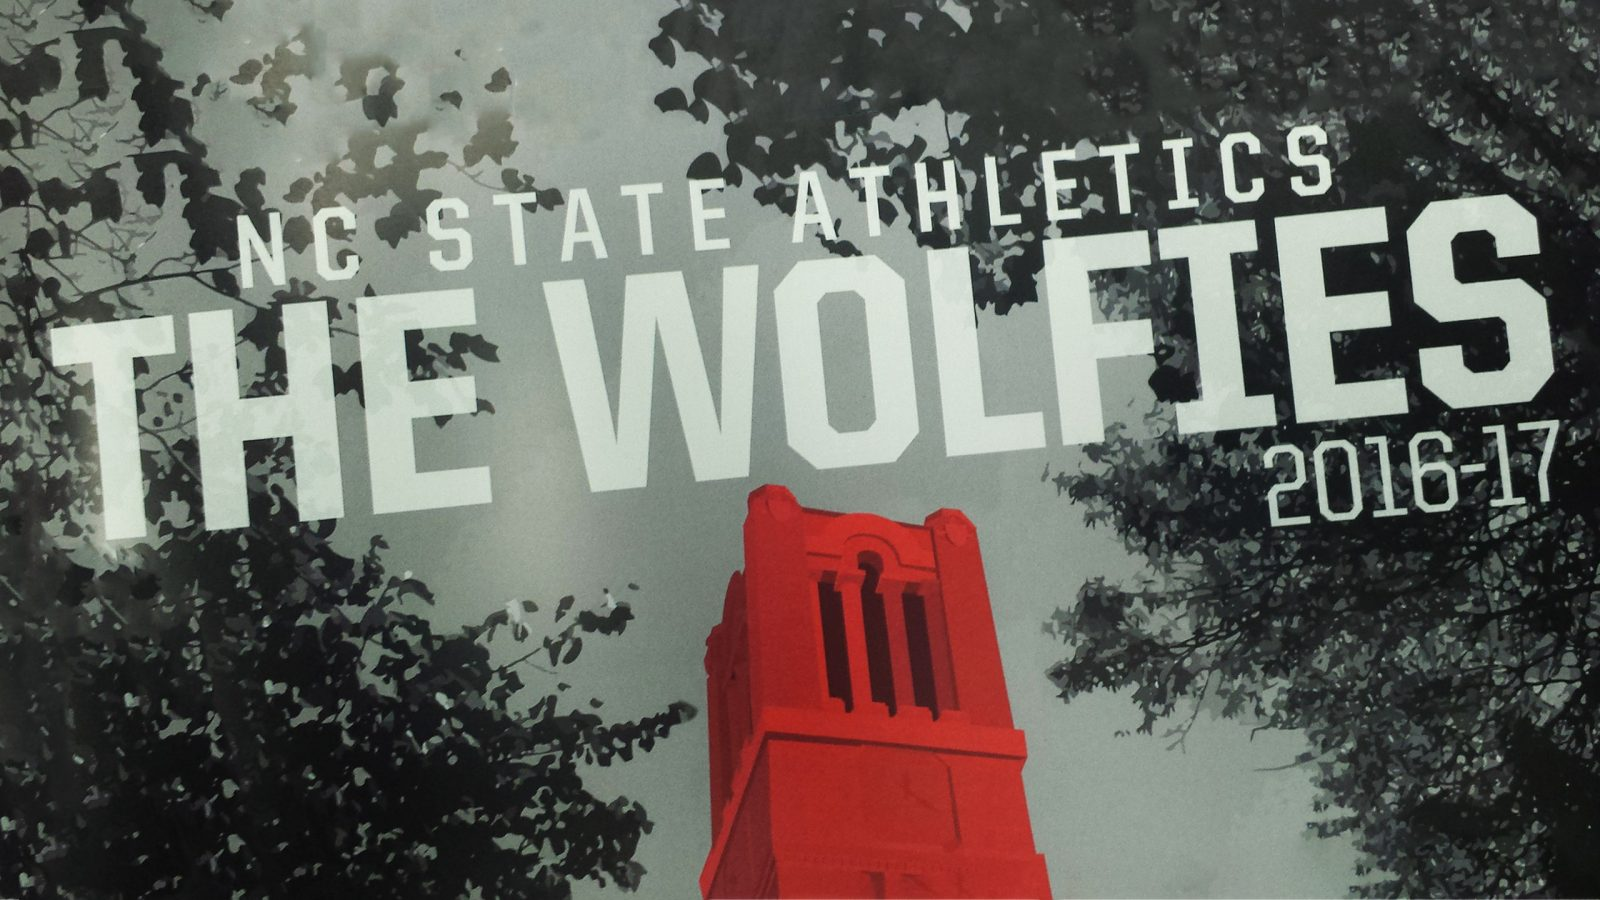 ISE scholar-athletes shine at the Wolfie Awards